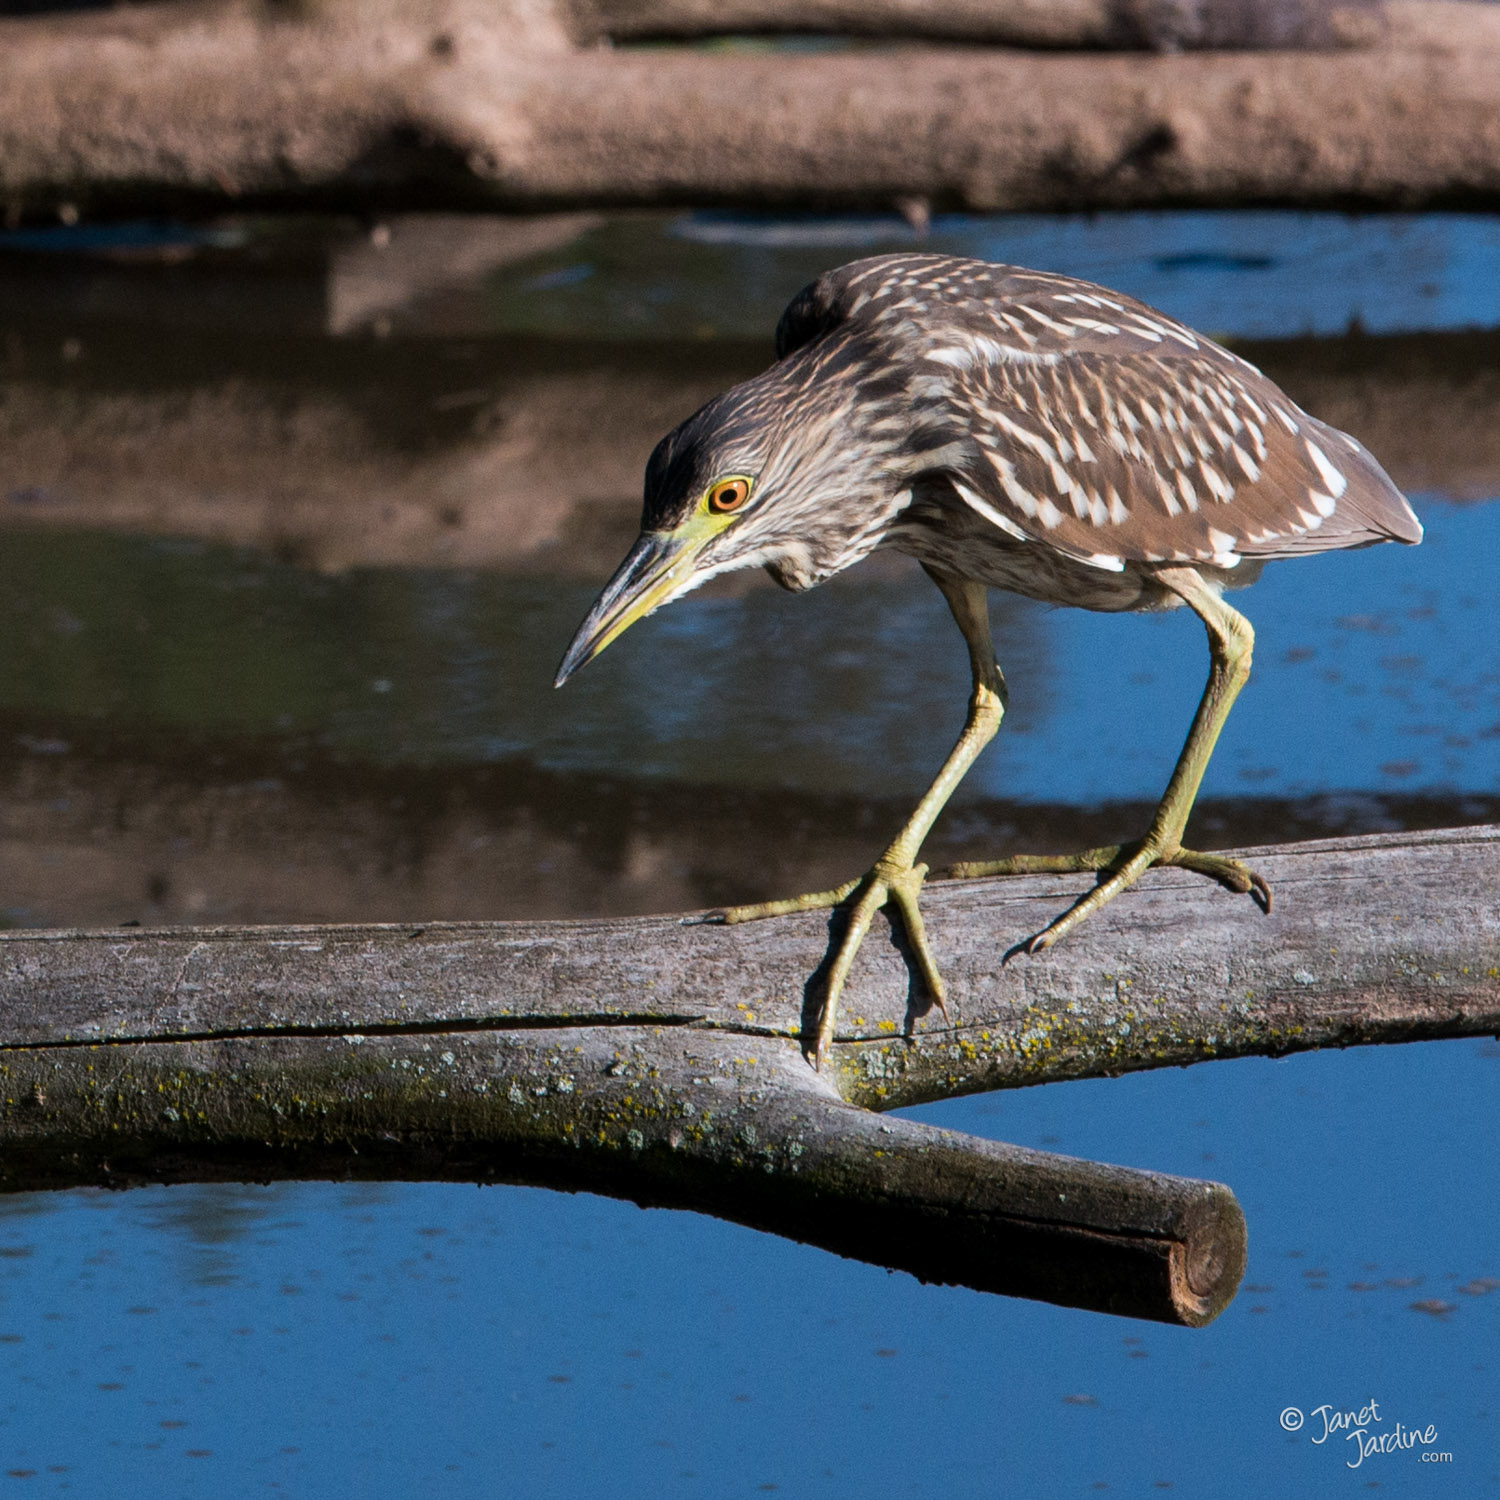 Junvenile-Black-crowned-Night-Heron_Photo_copyright_Janet_Jardine.jpg